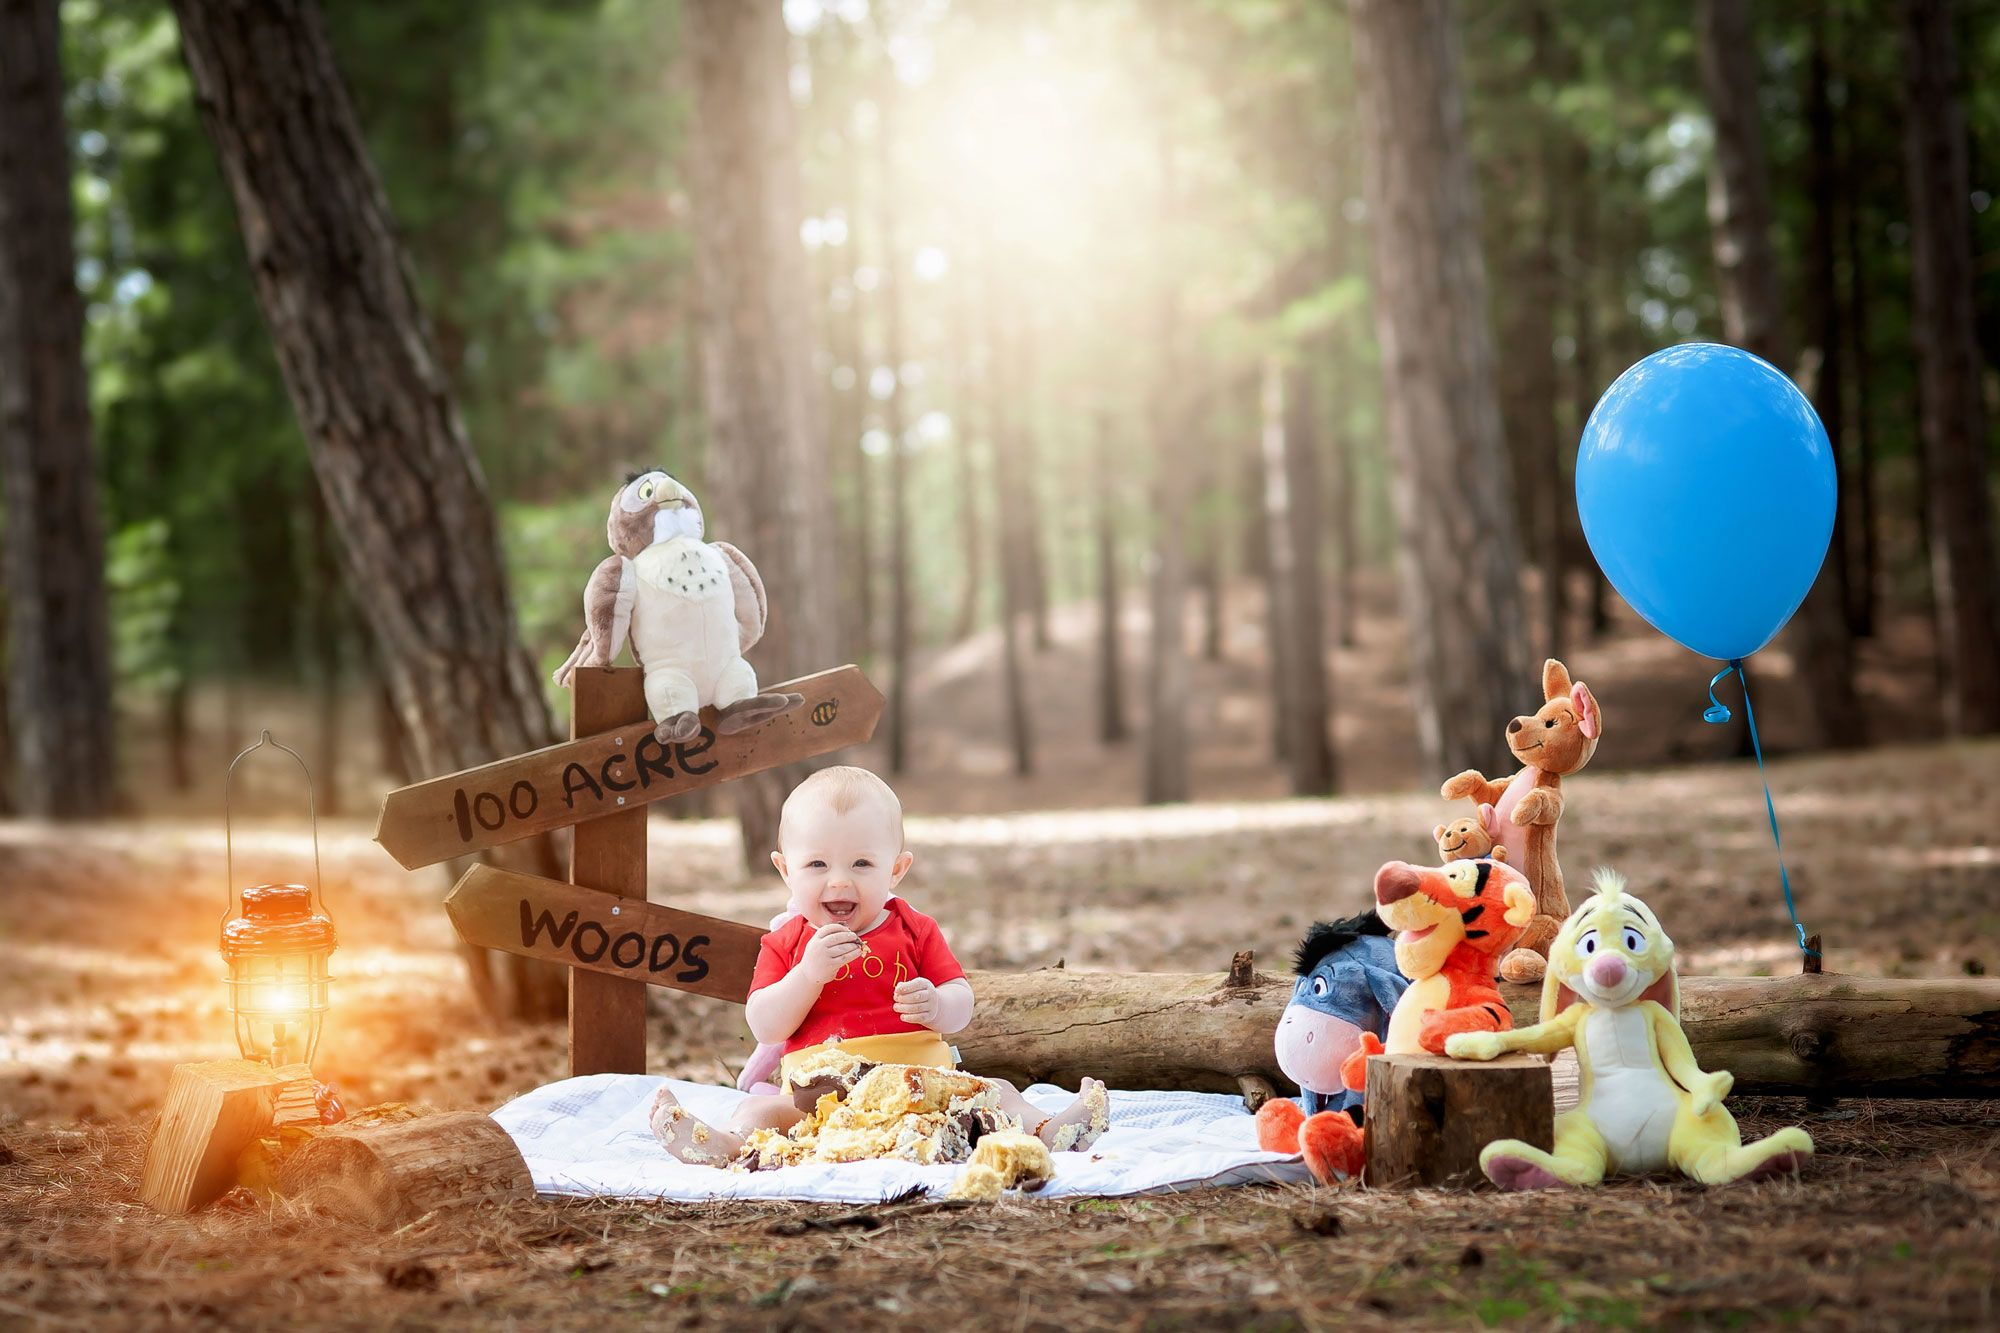 winnie the pooh cake smash in formby woods for 1st birthday